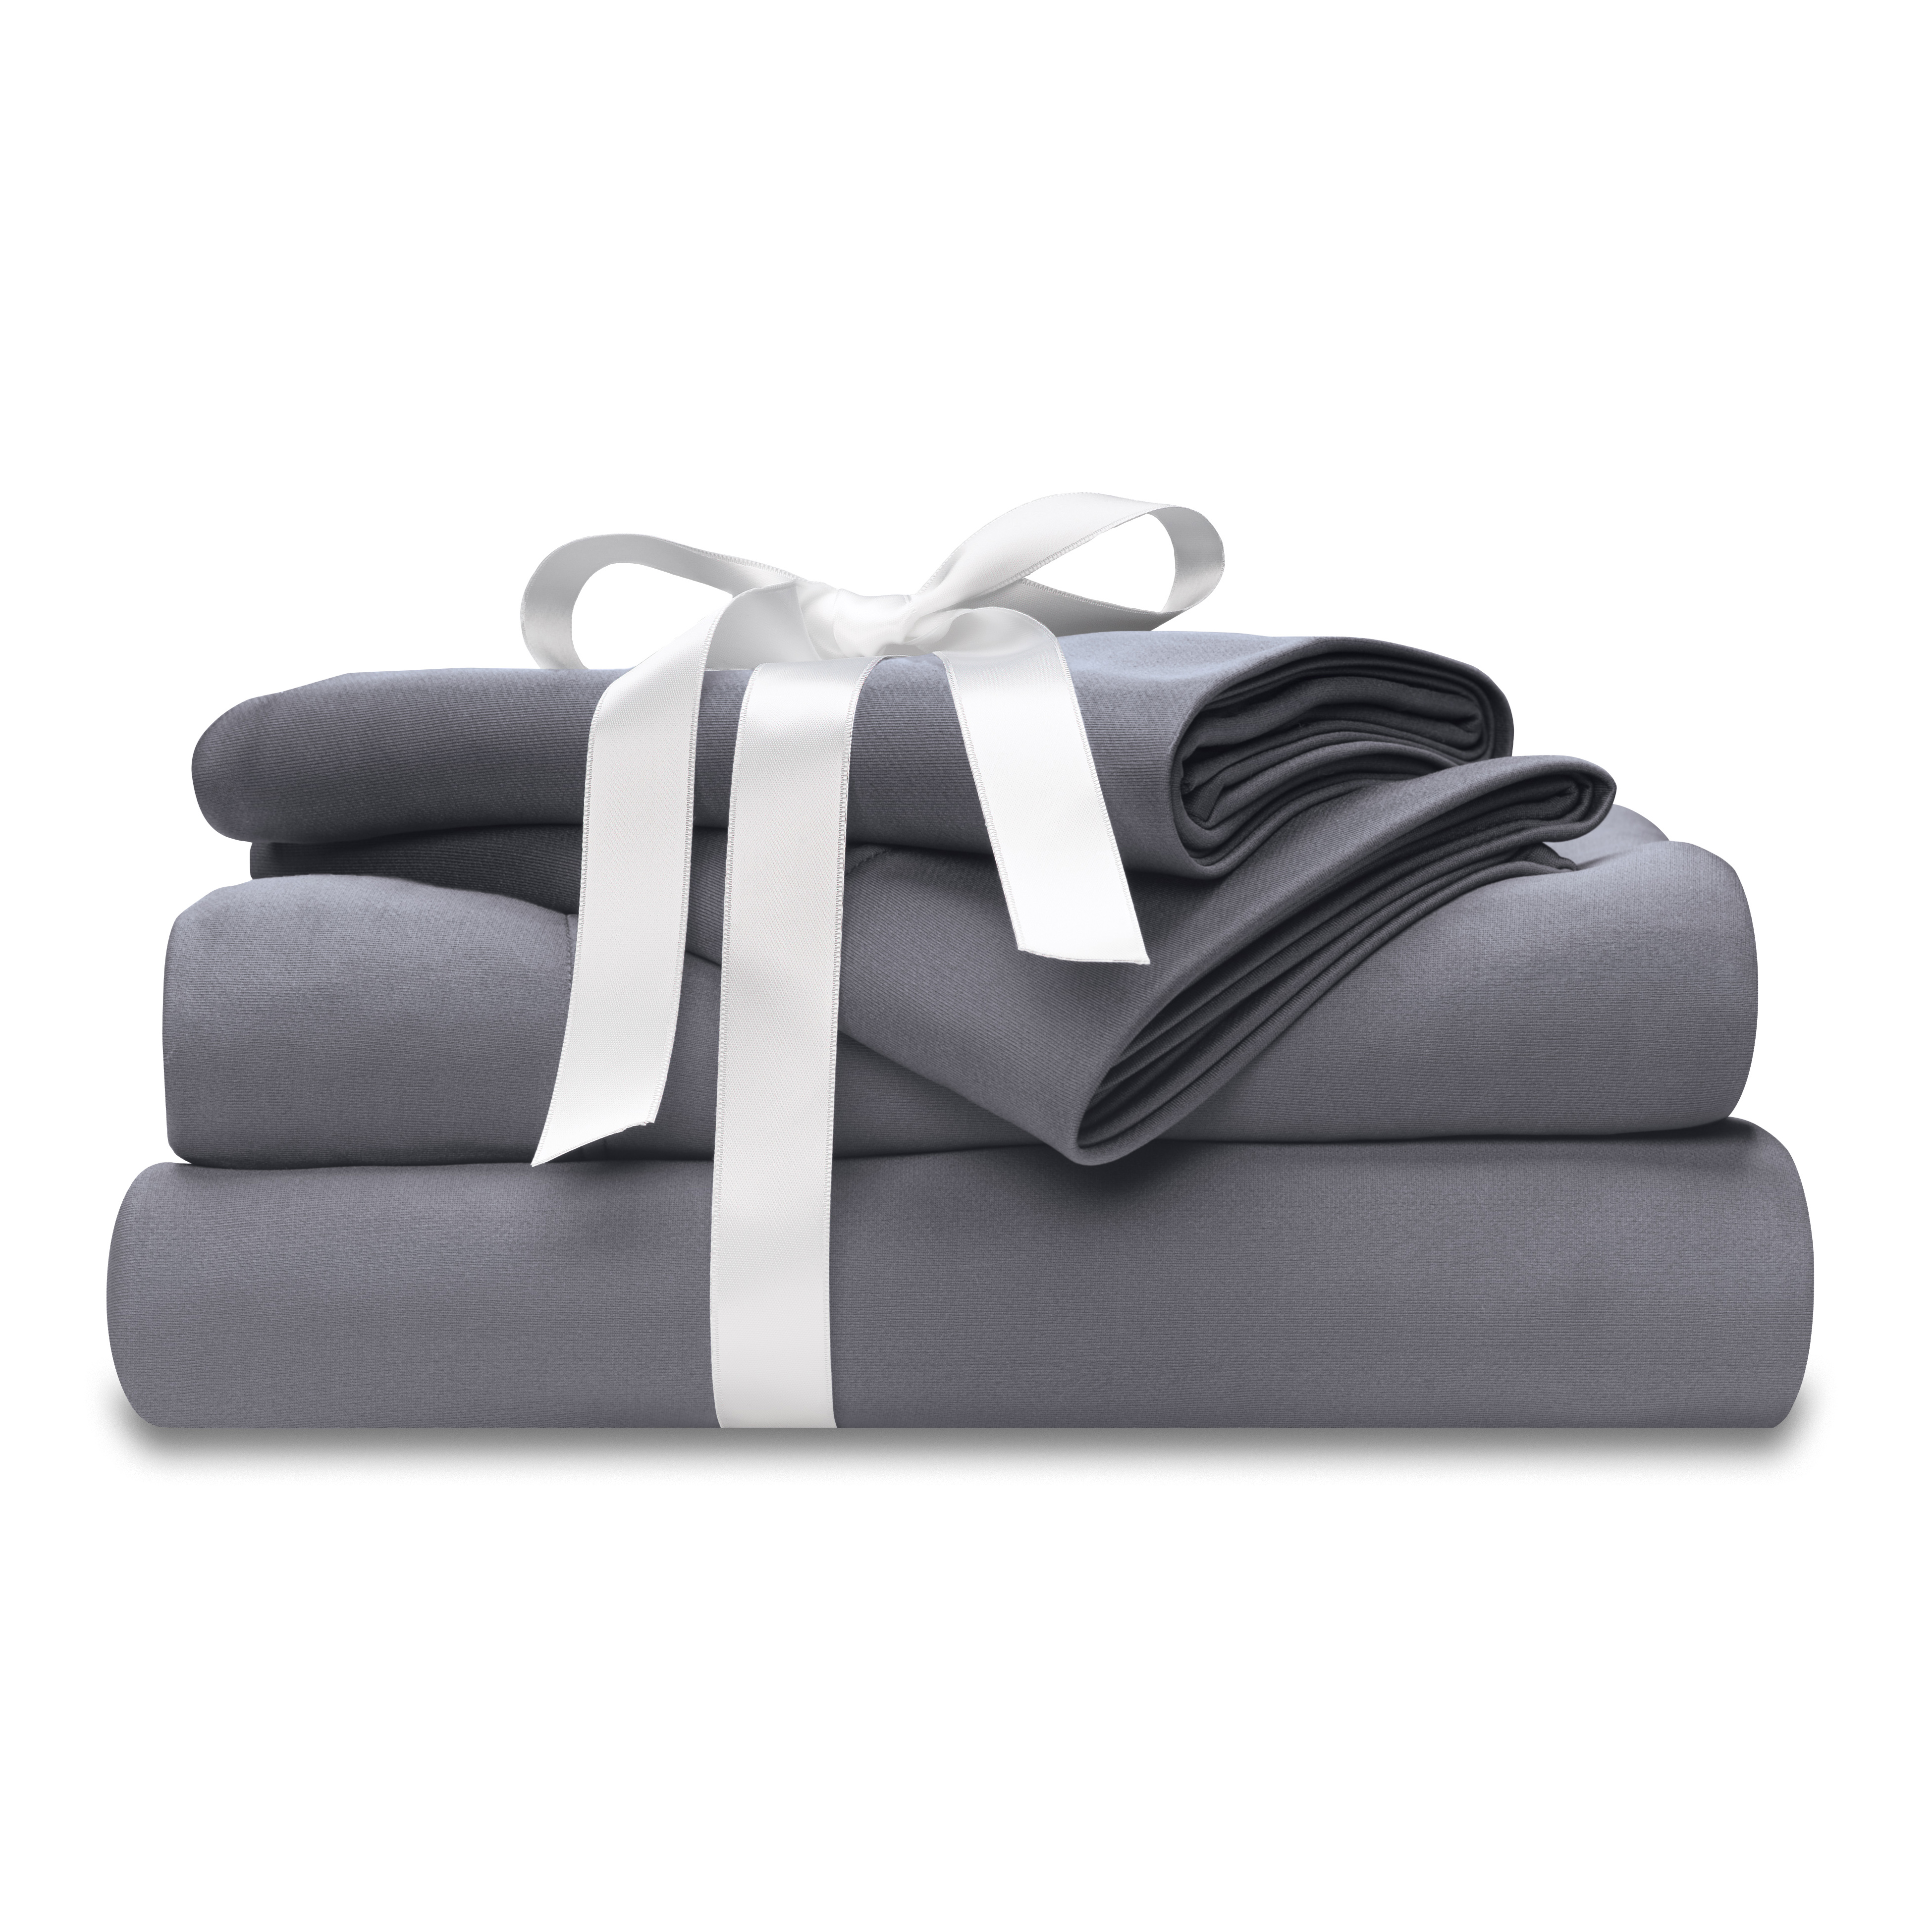 ... Moisture Wicking Gray Bed Sheet Set With Bow At Wicked Sheets ...